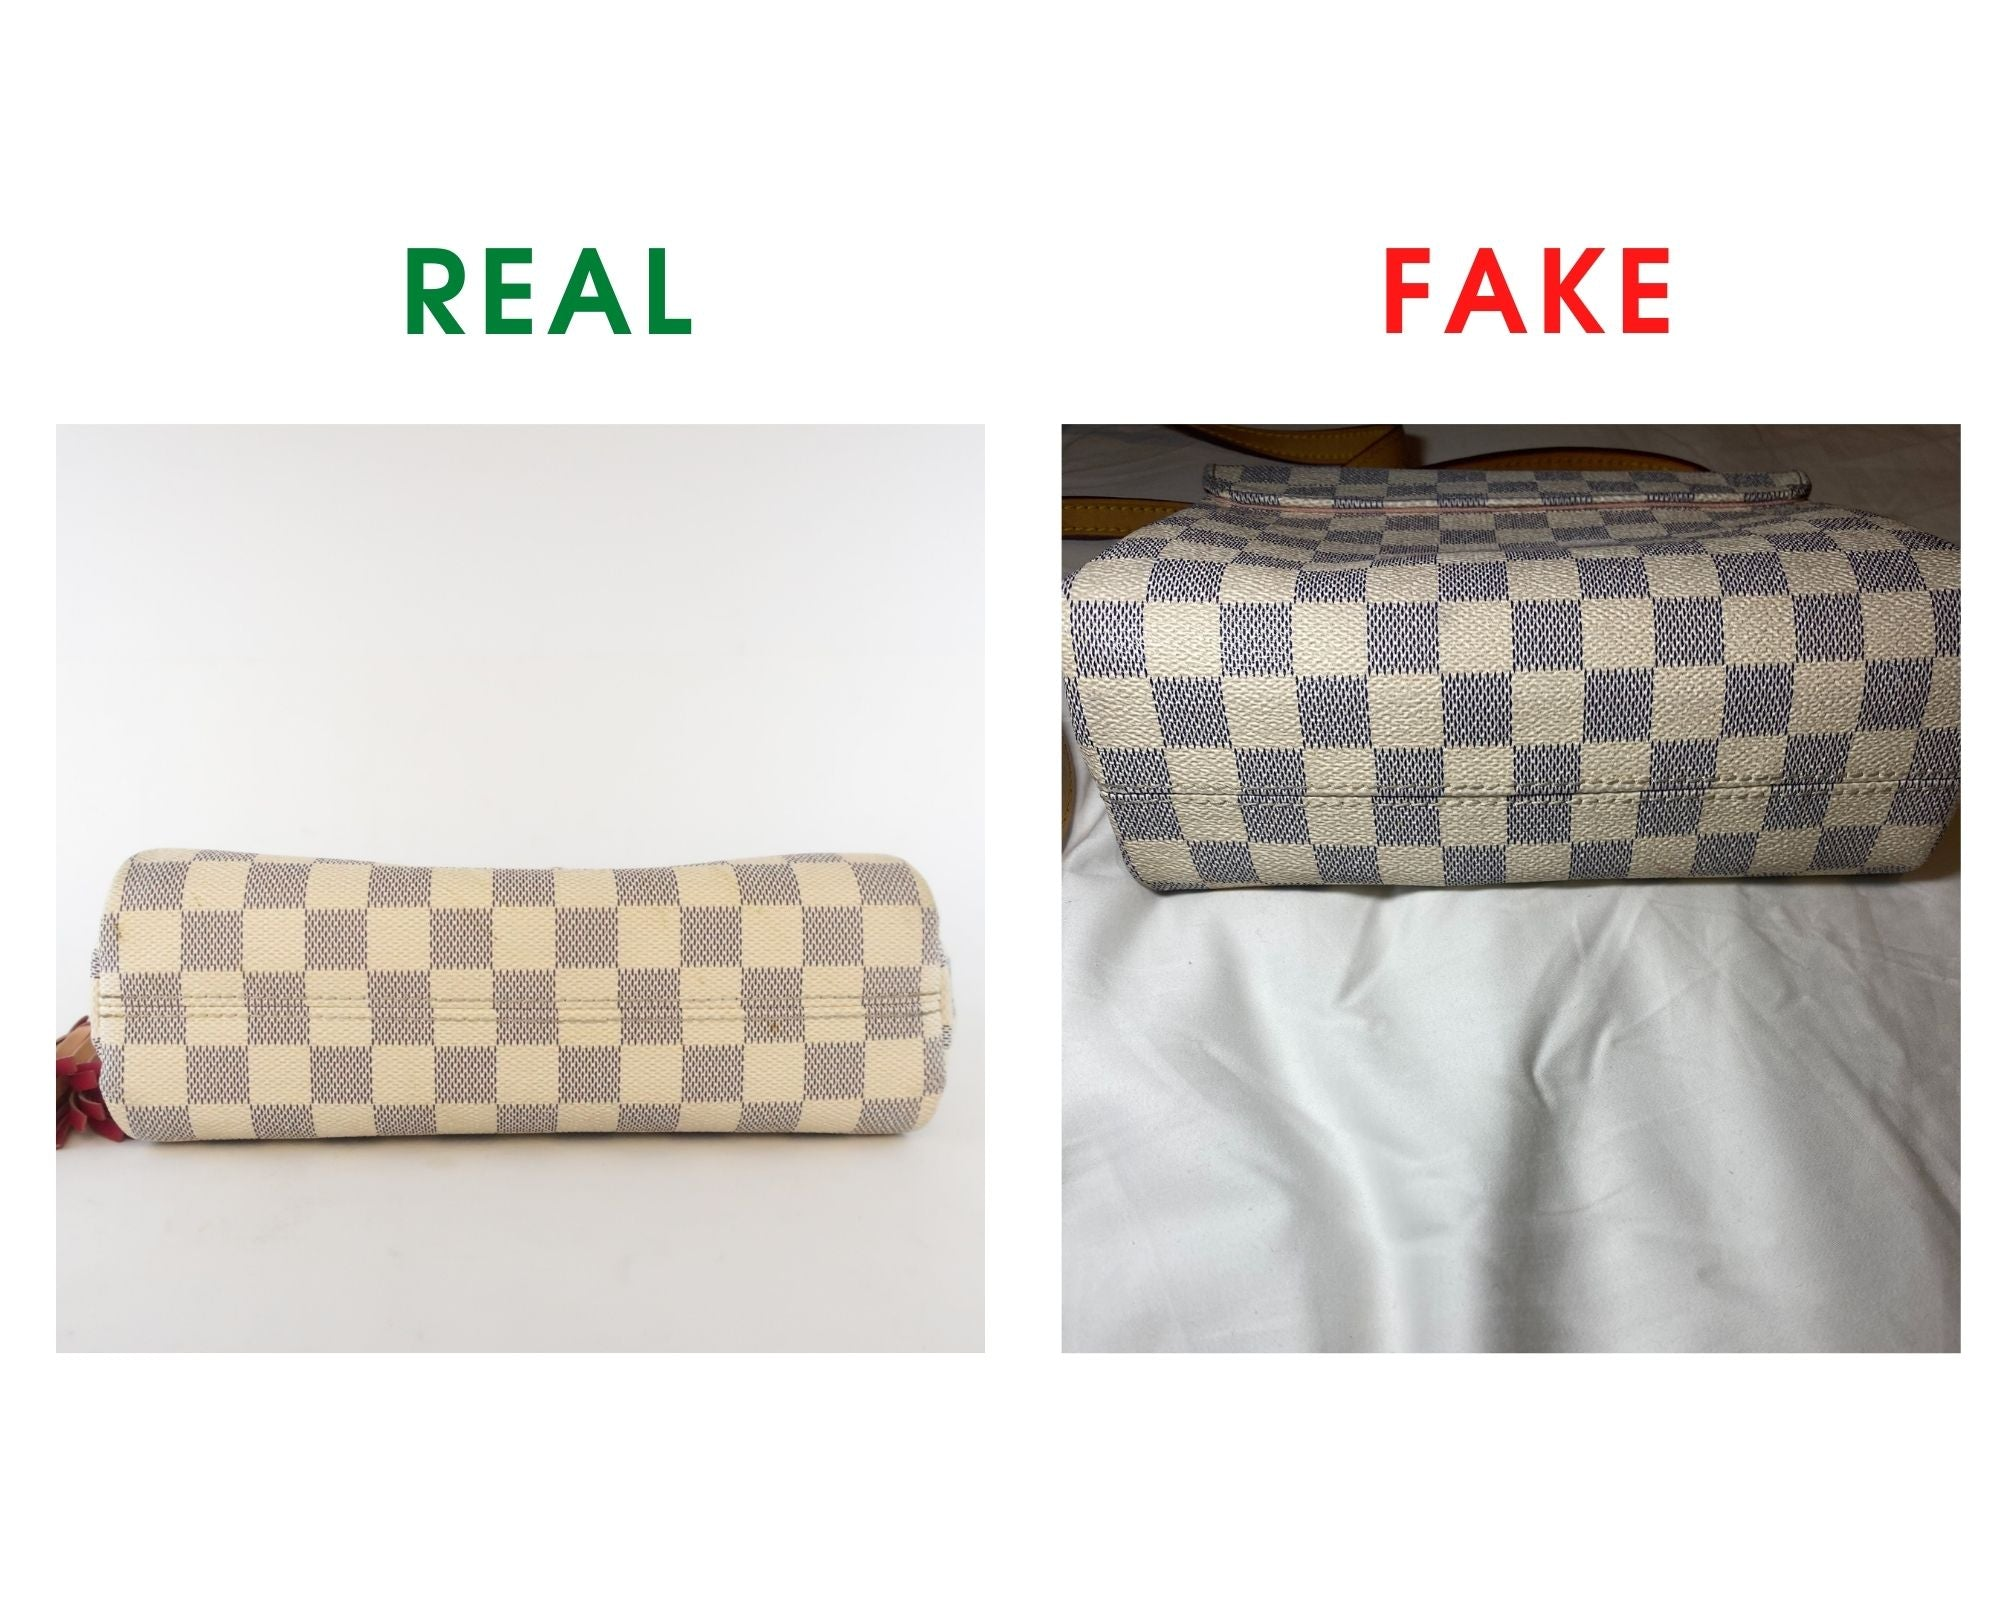 Louis Vuitton Croisette Bag Review and Real vs Fake Comparison (With Real Photos) bottom pattern